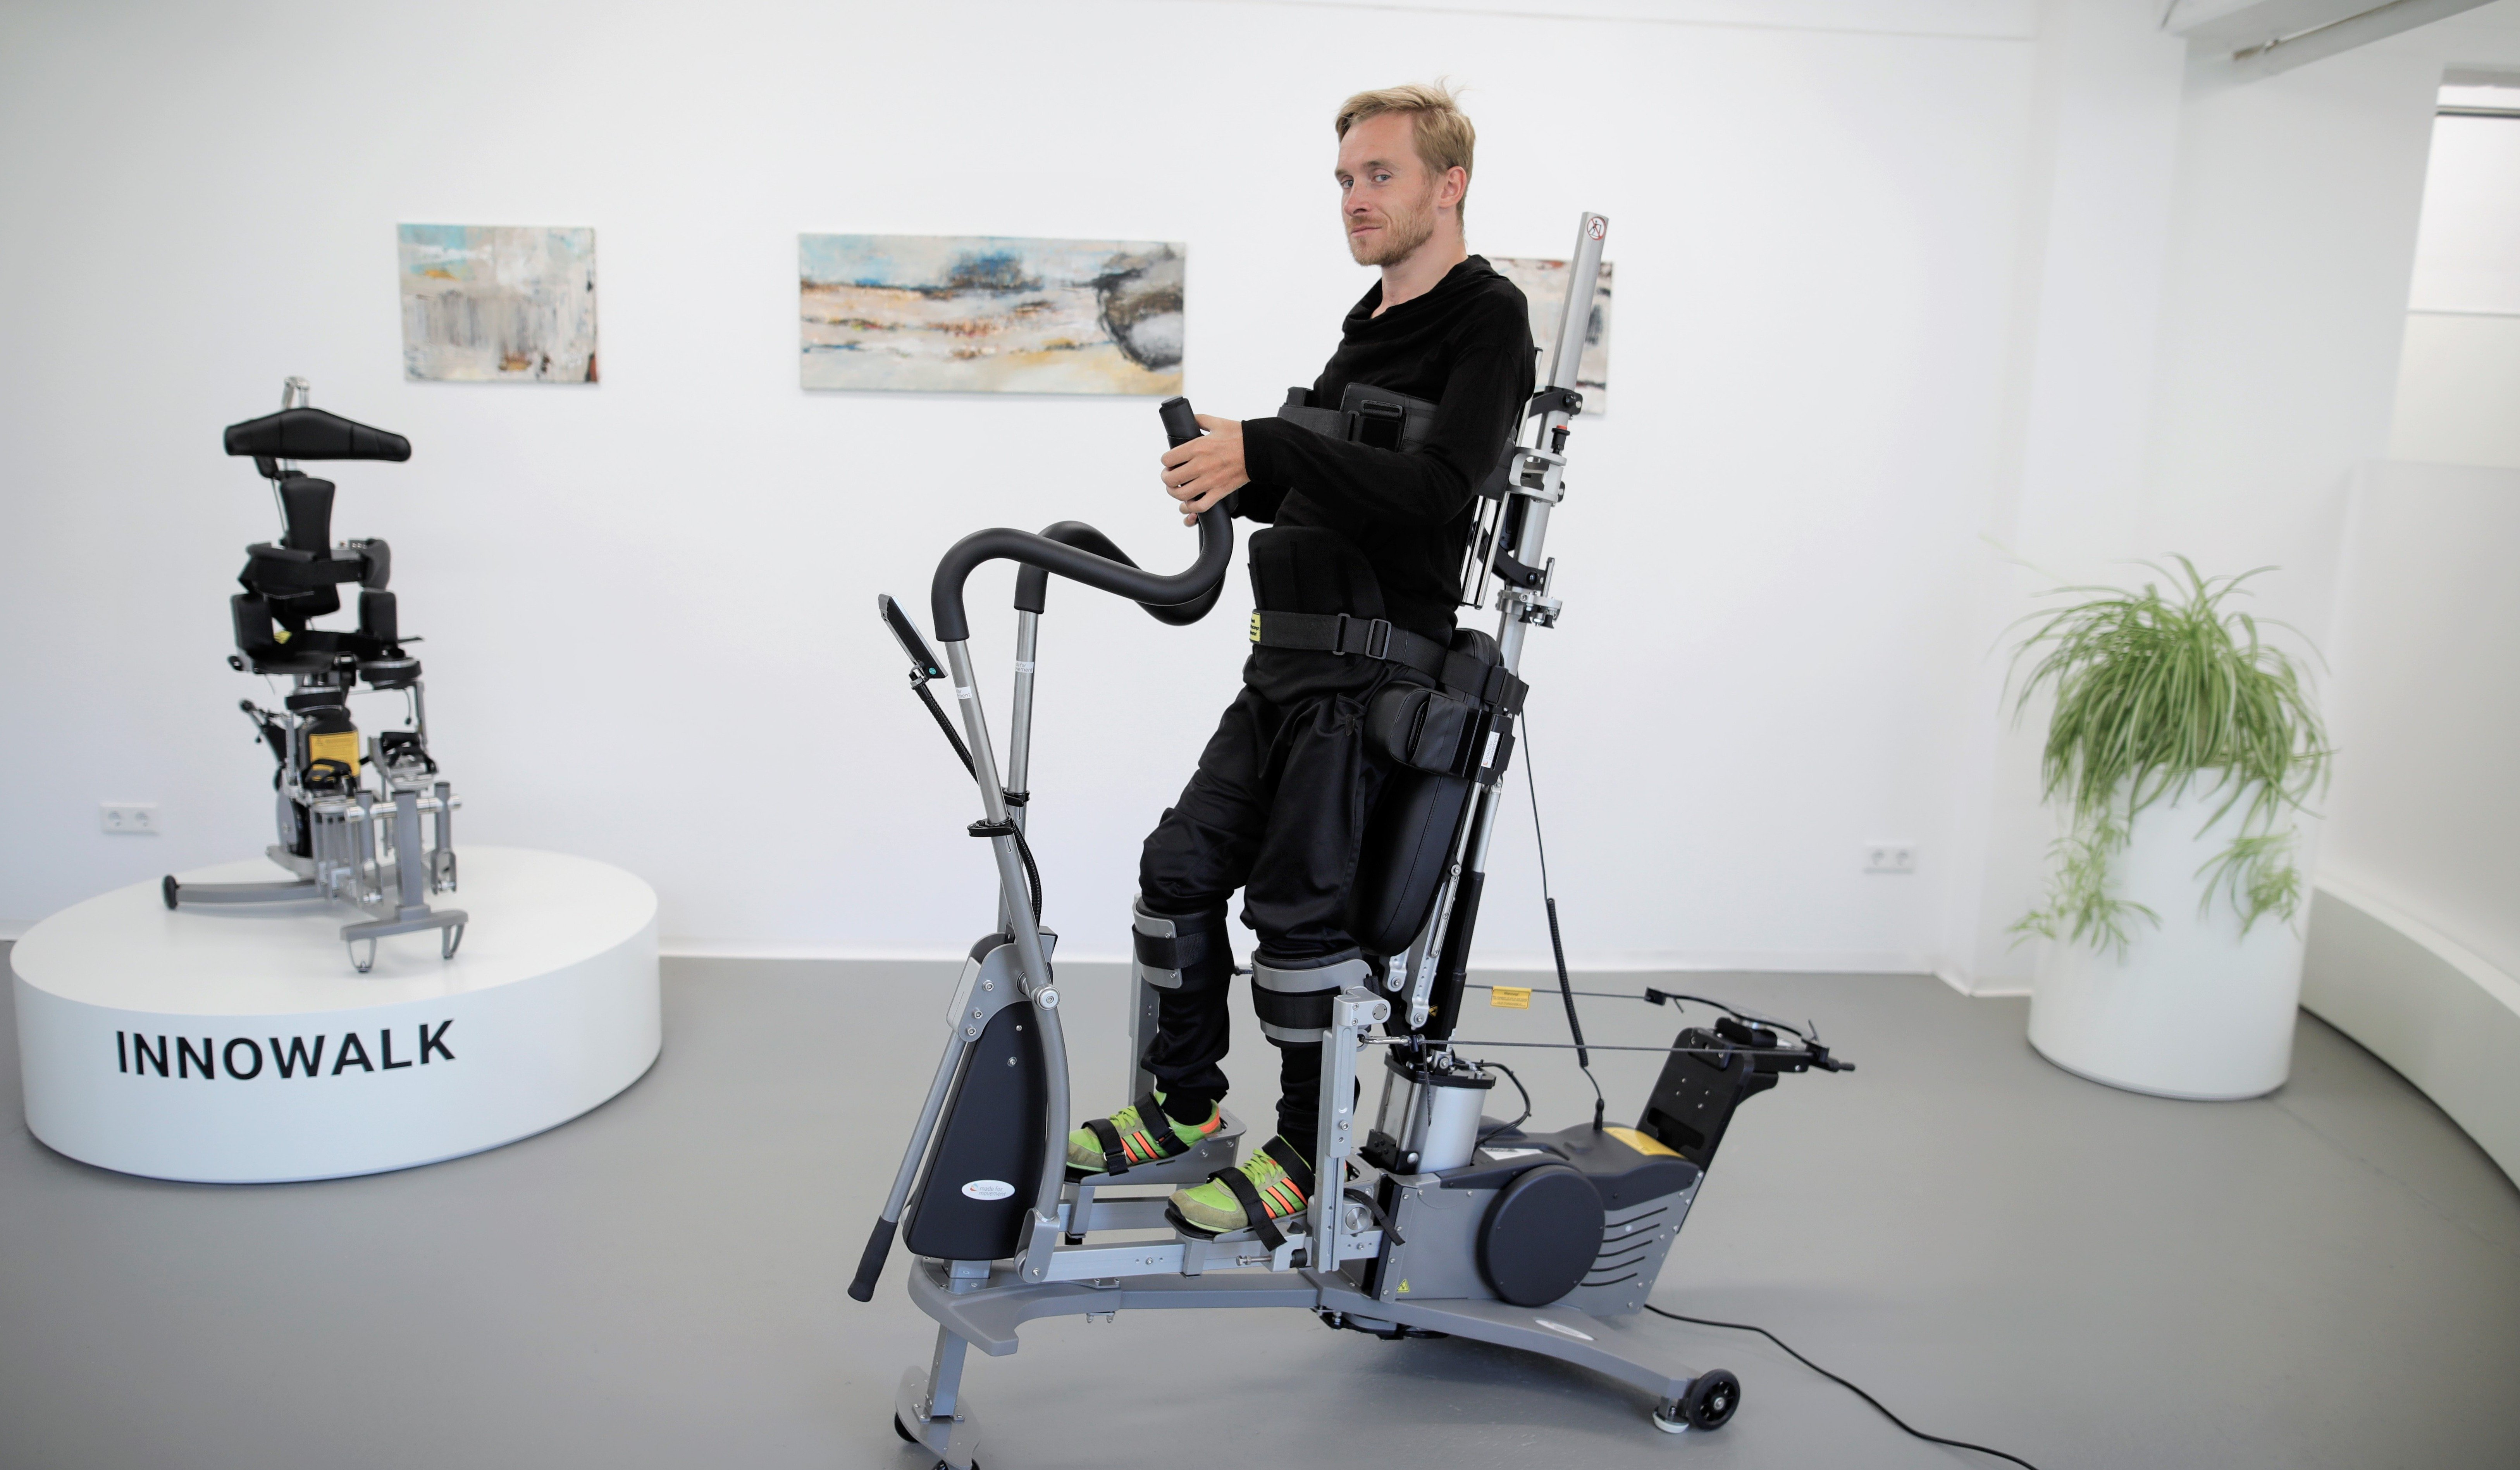 One of the most innovative rehabilitation centres in Germany uses the Innowalk Pro